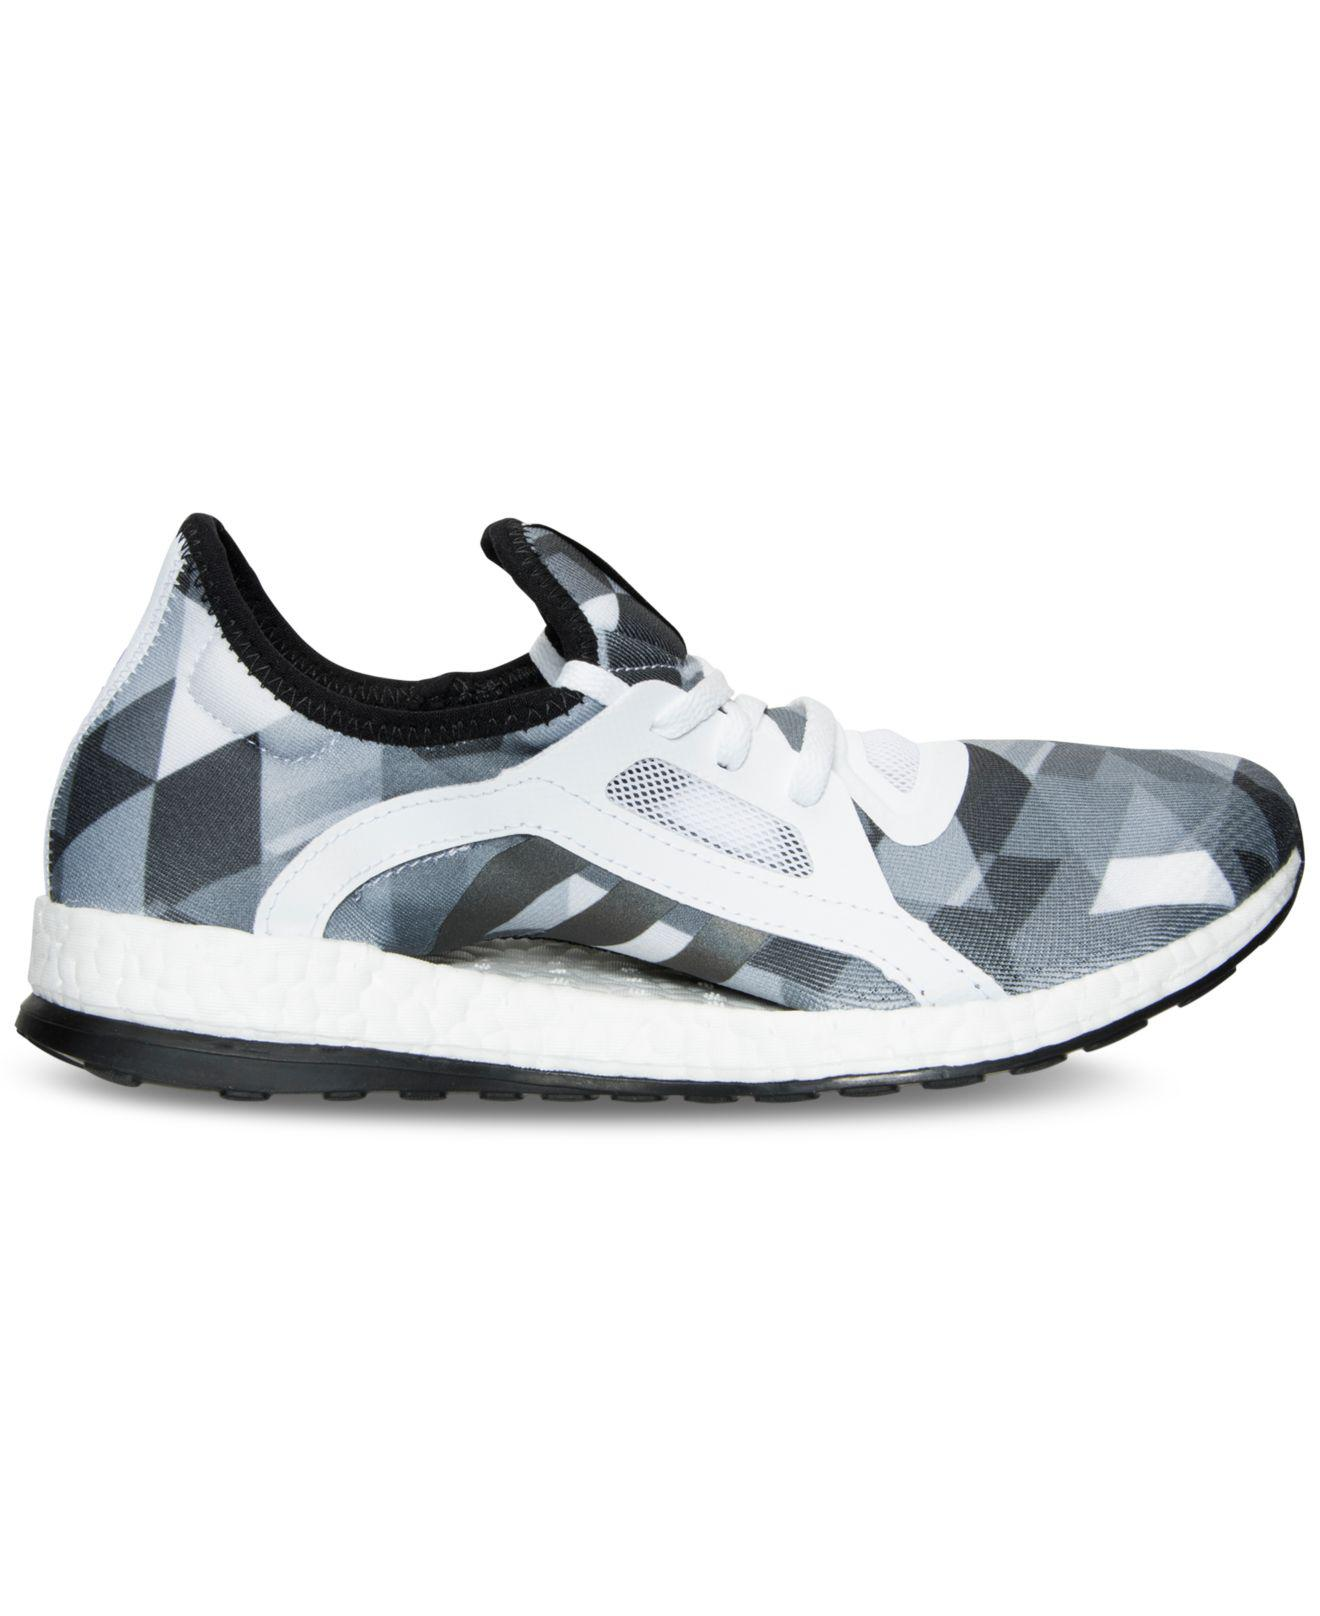 dd0cc7ca05652 ... greece lyst adidas pure boost x running sneakers from finish line ad0df  b3d94